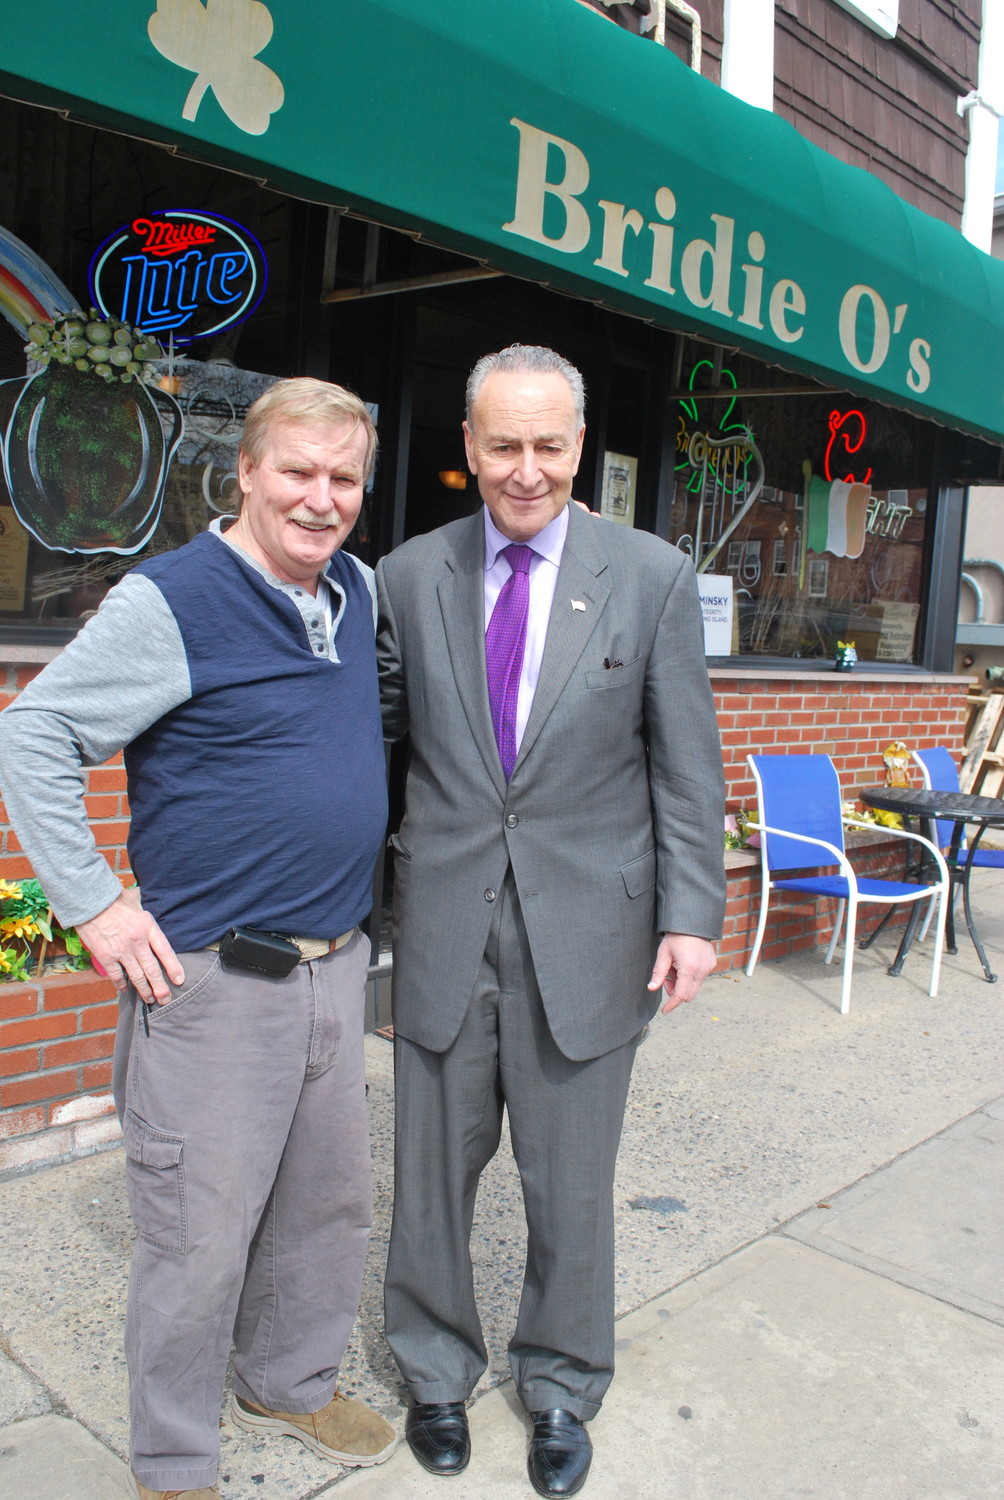 Bridie O's co-owner Jimmy Dowling, left, with Sen. Charles Schumer outside the Lawrence bar on Central Avenue in 2016.